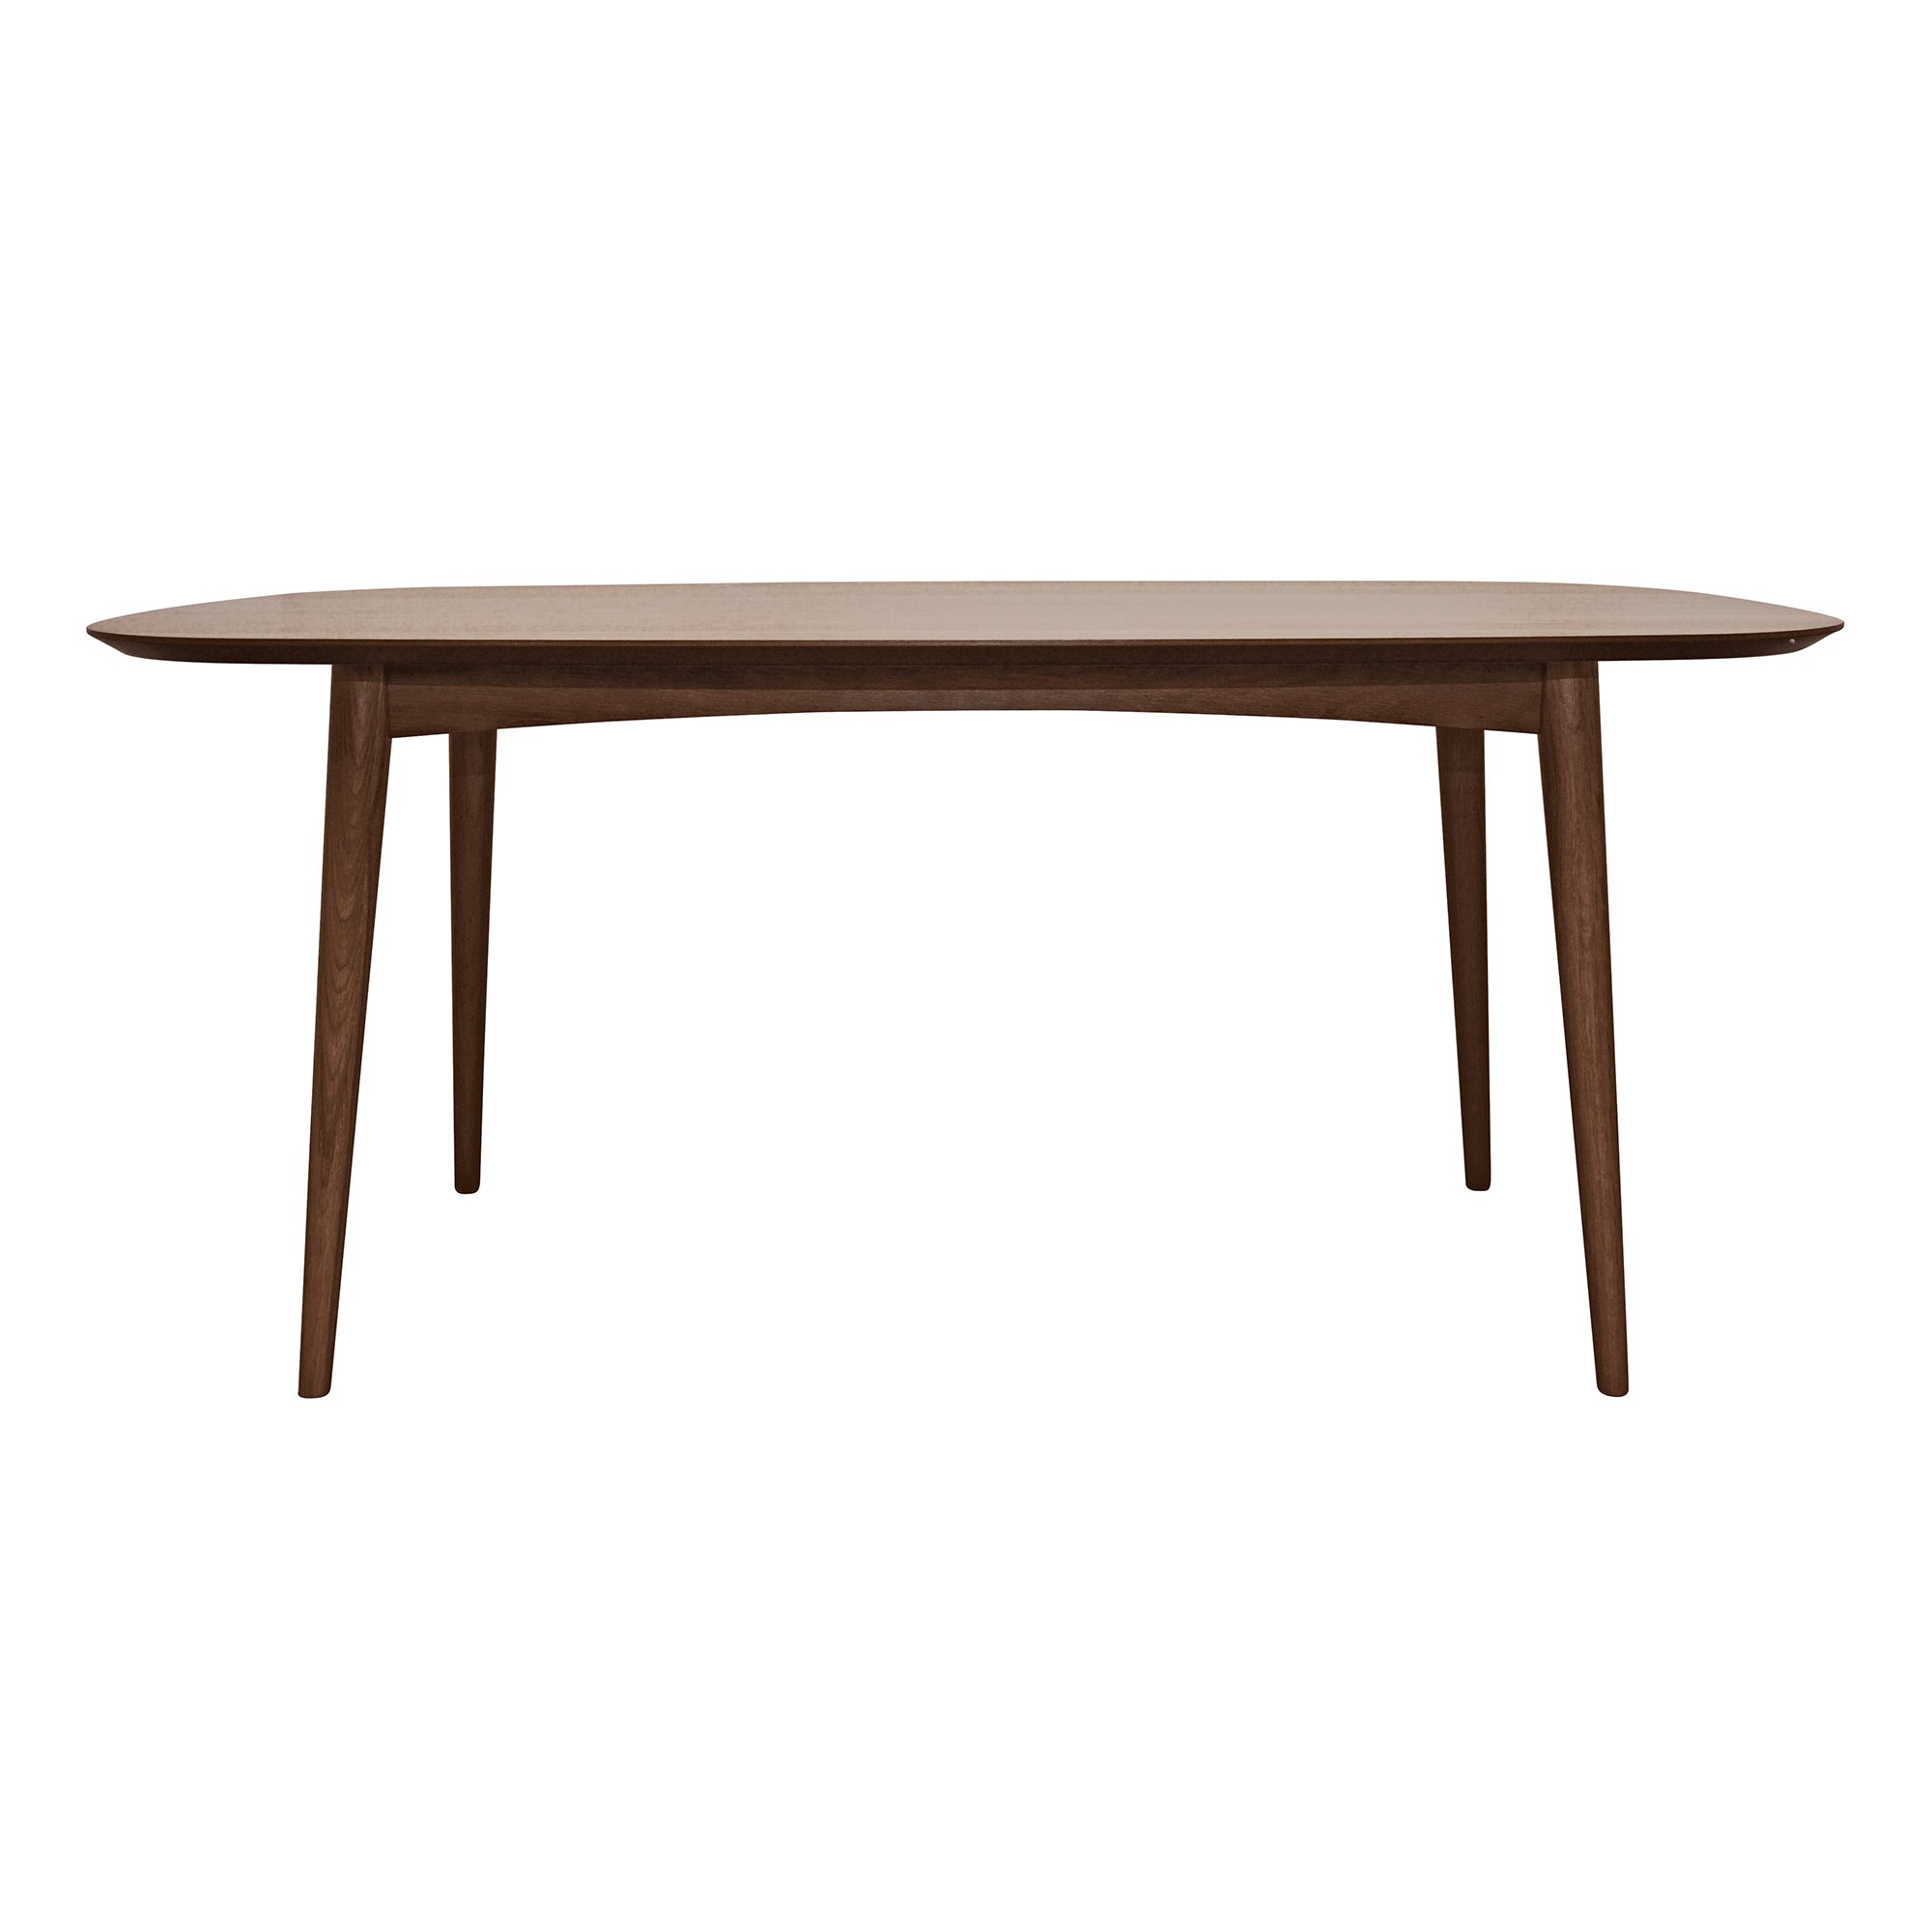 Skandi Walnut Dining Furniture Collection